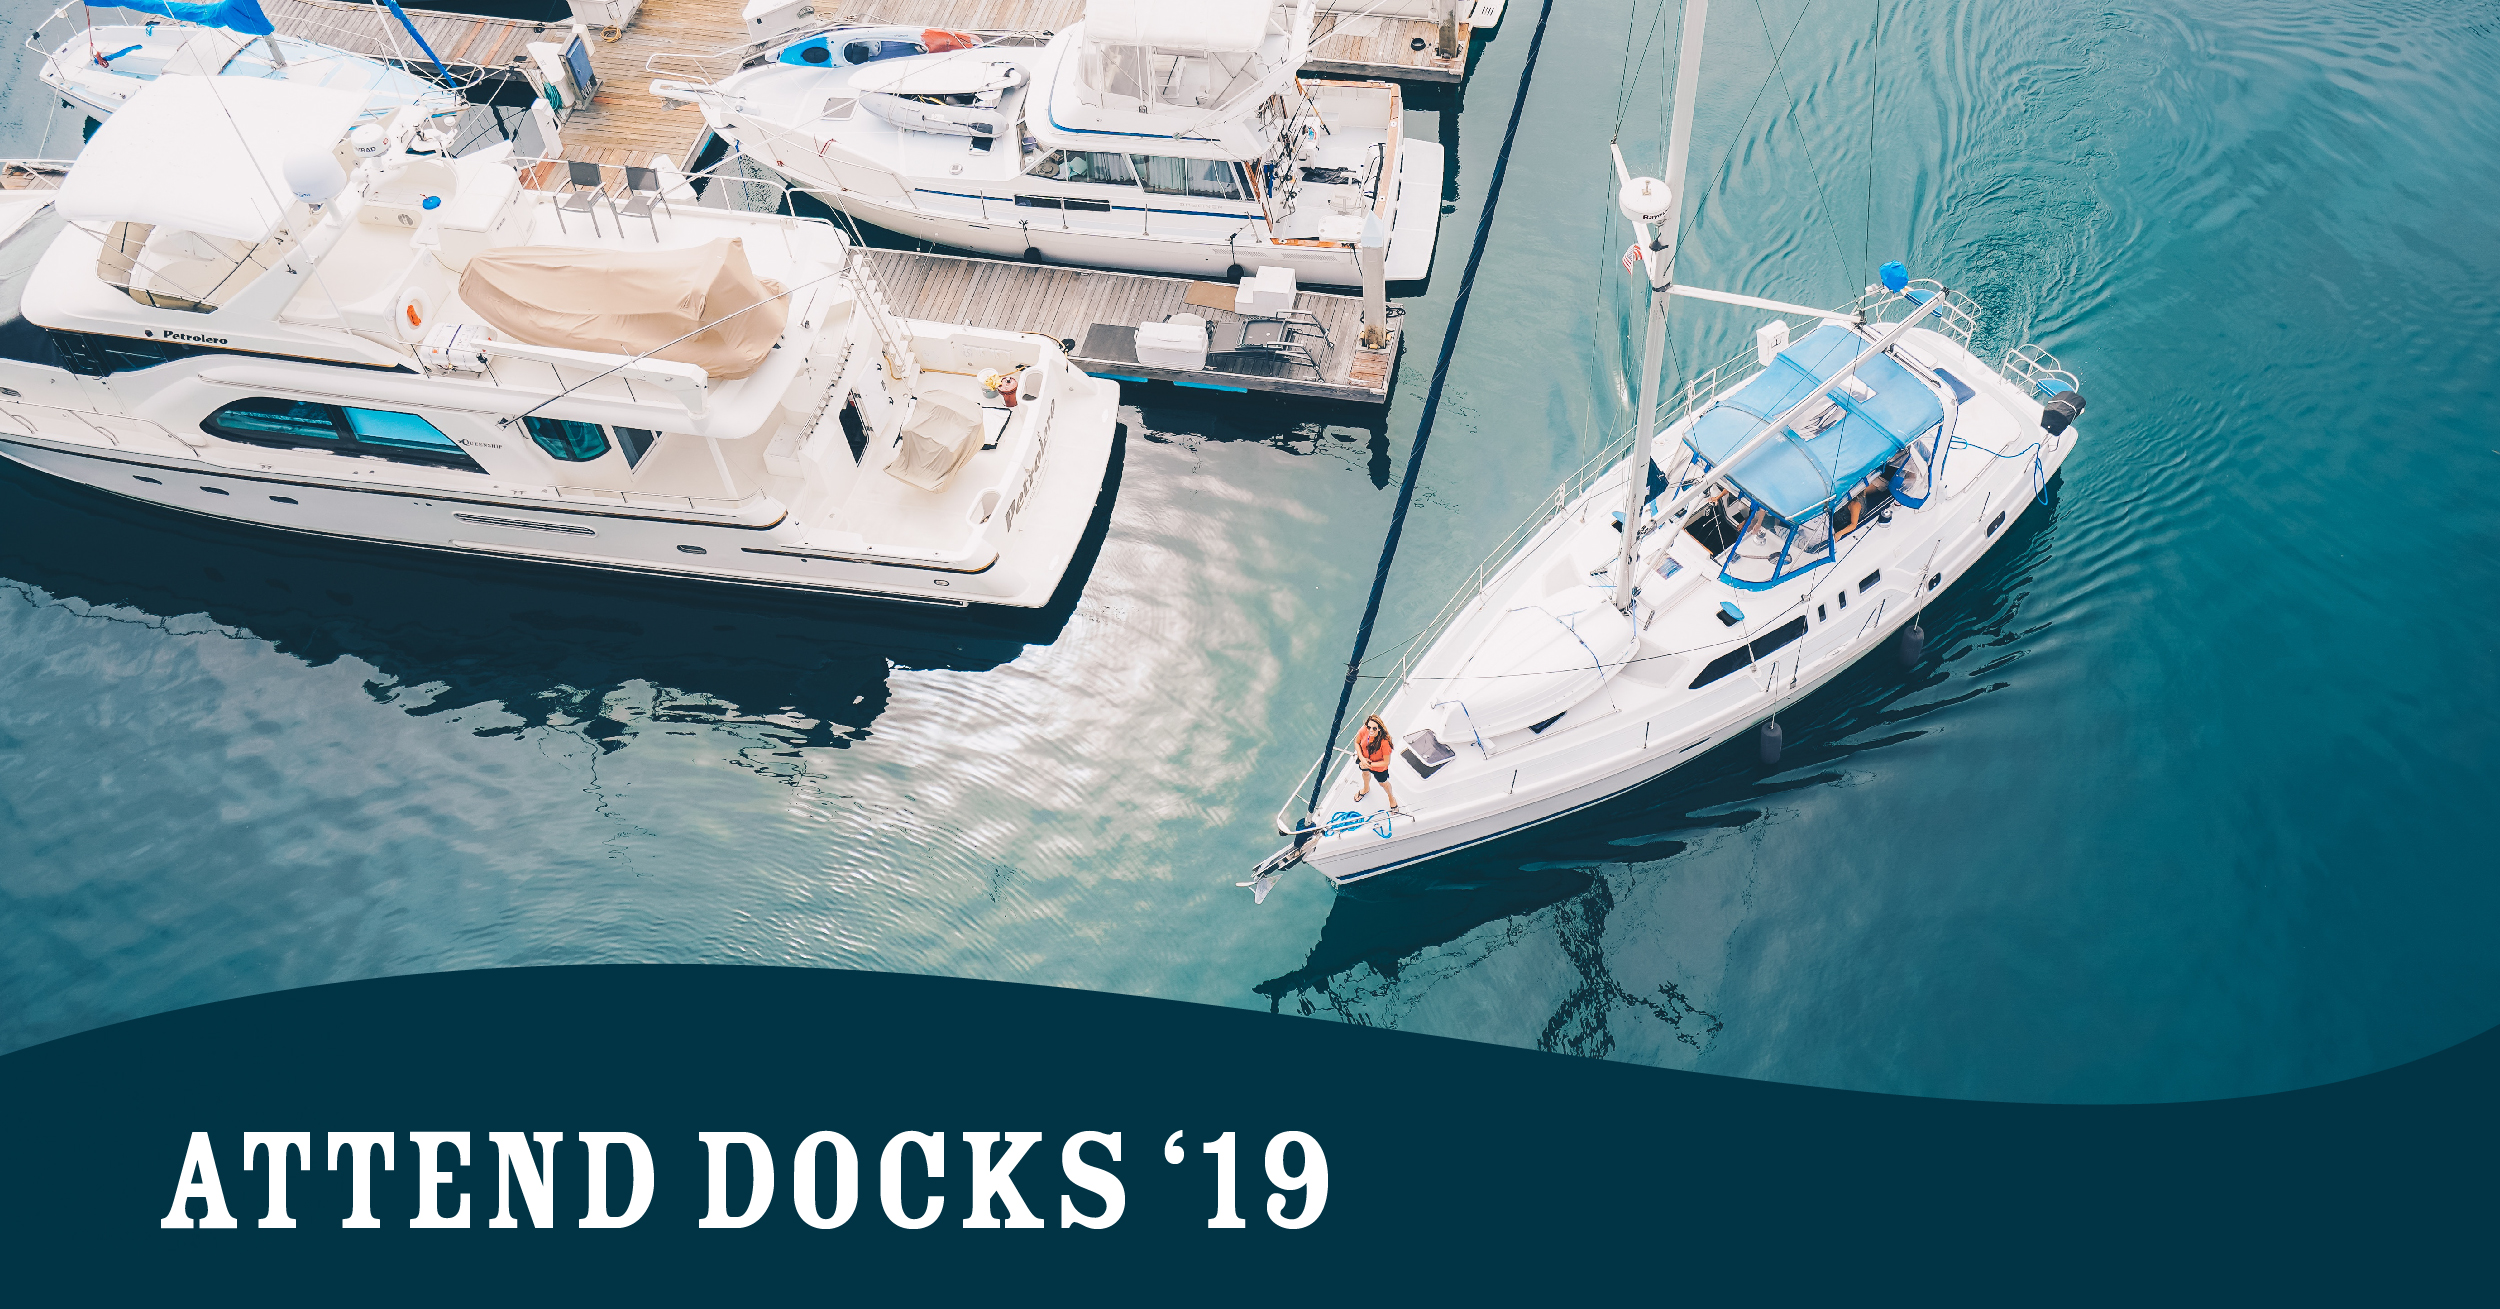 Attend The Docks Expo 2019